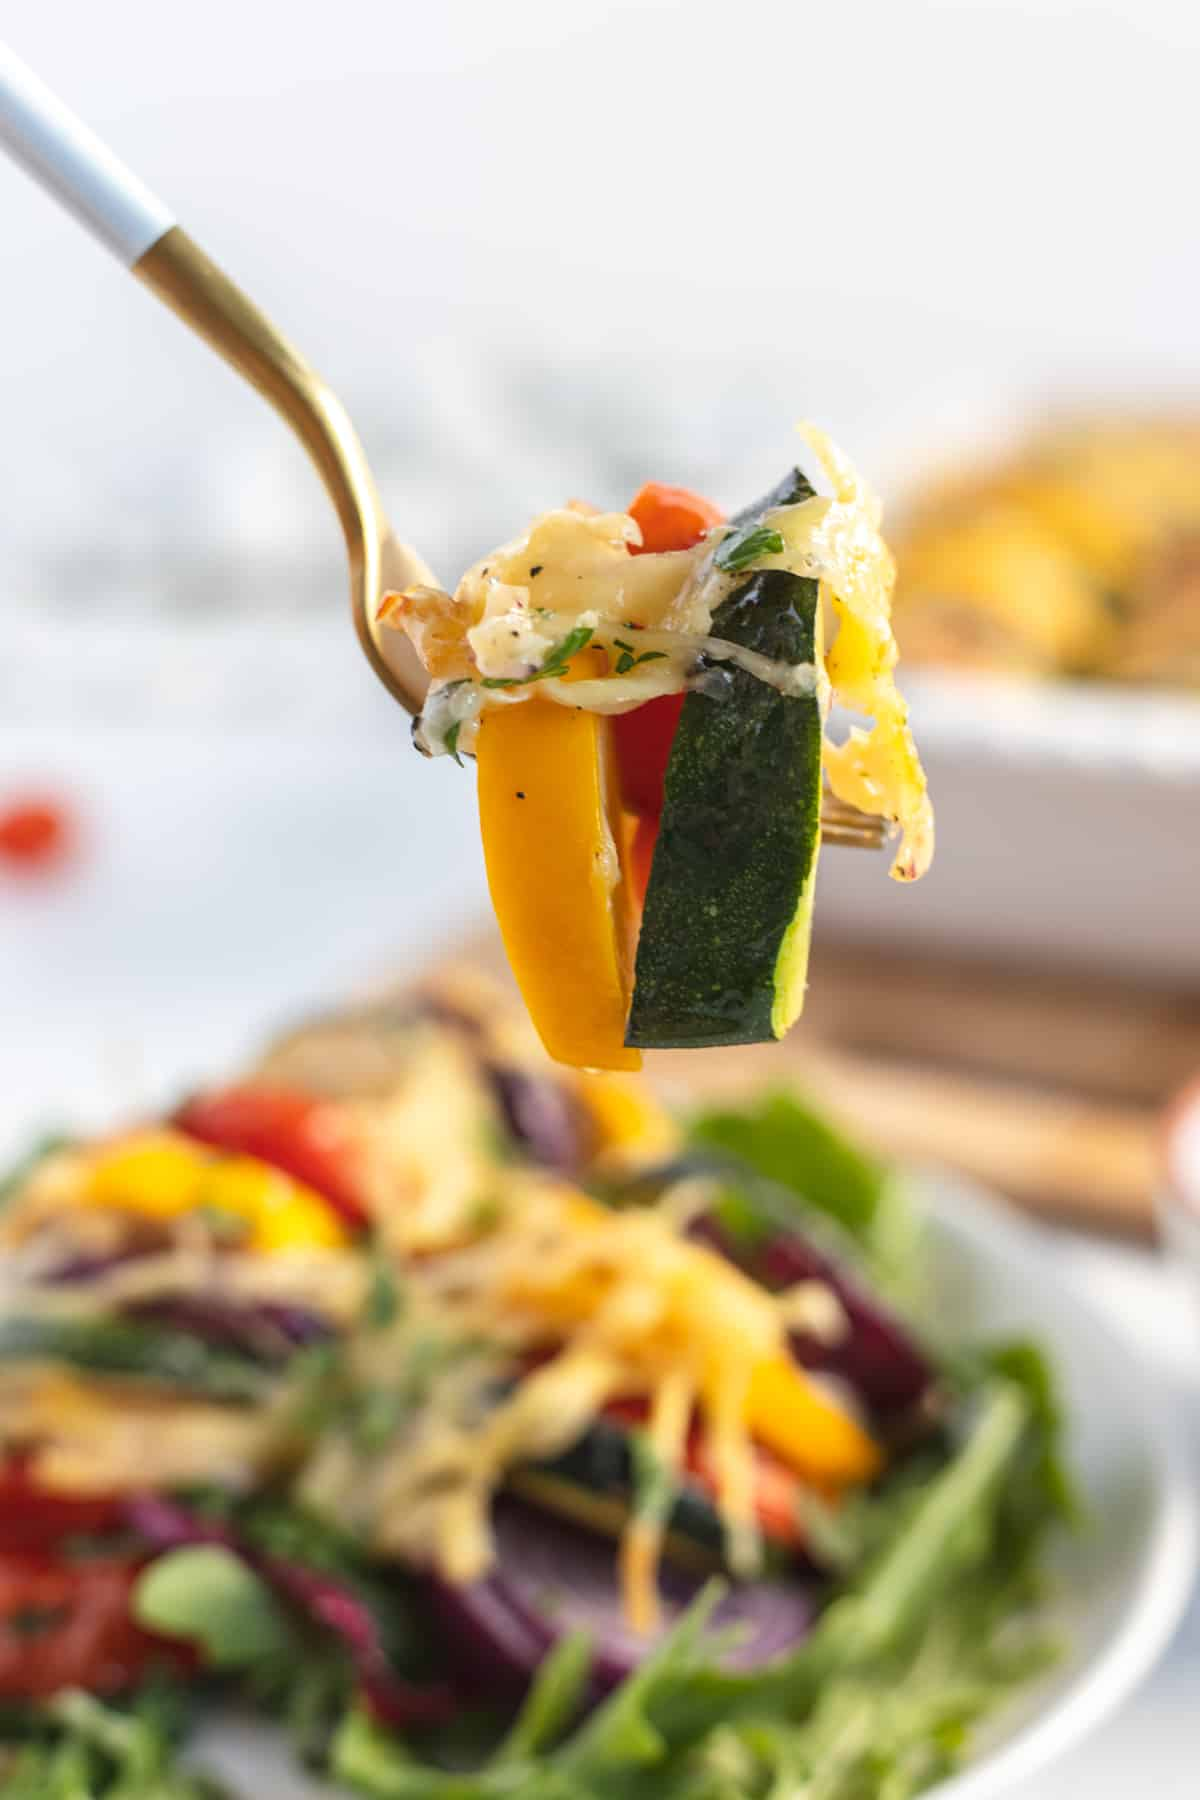 fork with cooked vegetables